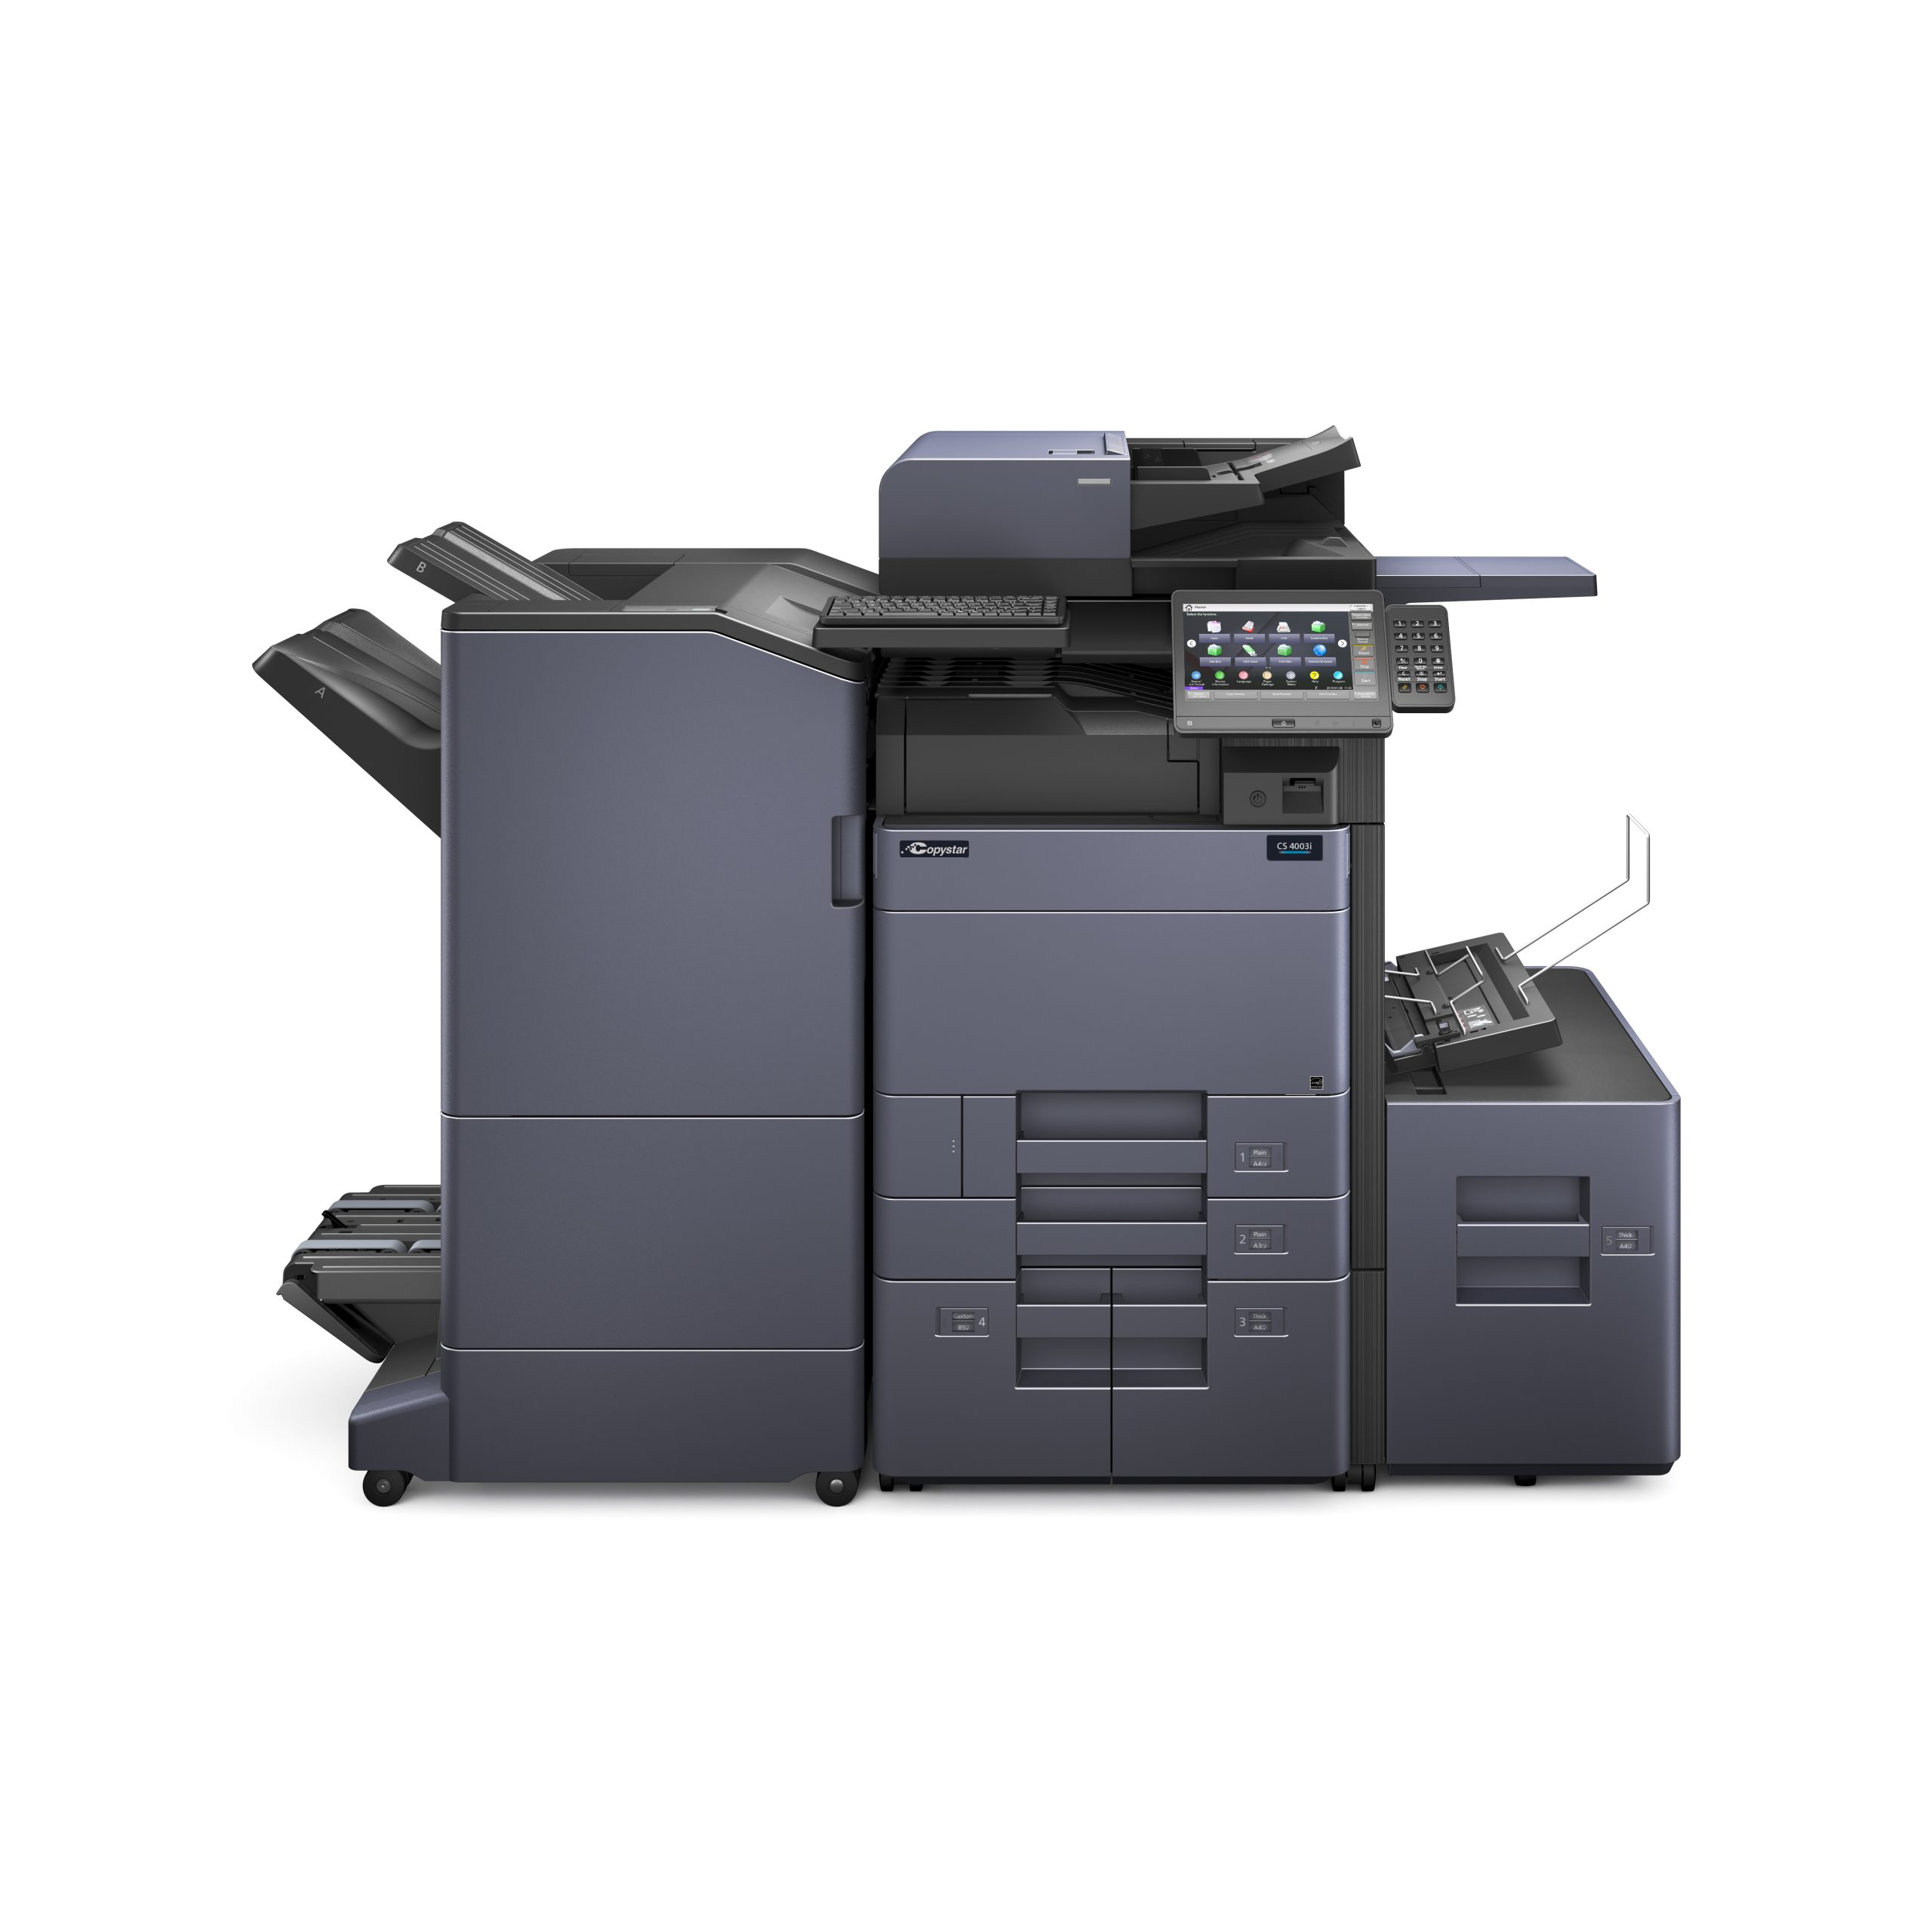 kyocera CS_4003i Copy Machine Price Florida